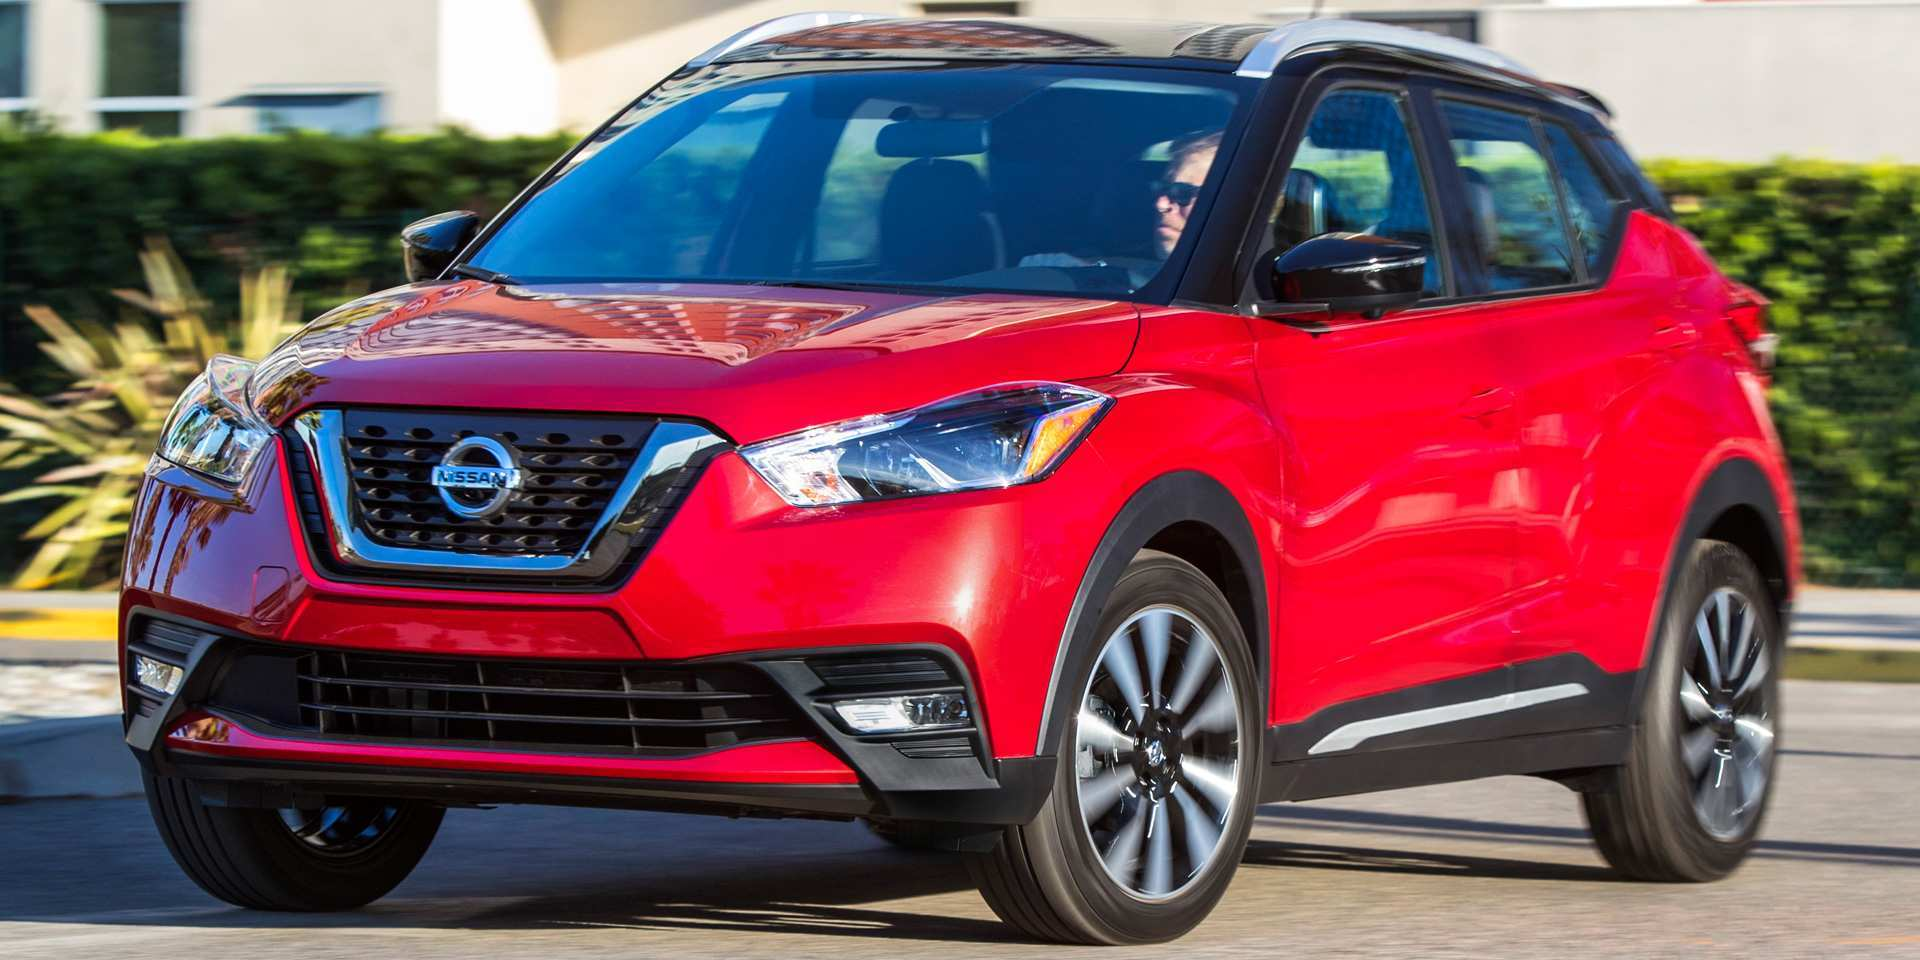 55 All New 2019 Nissan Cars Pictures